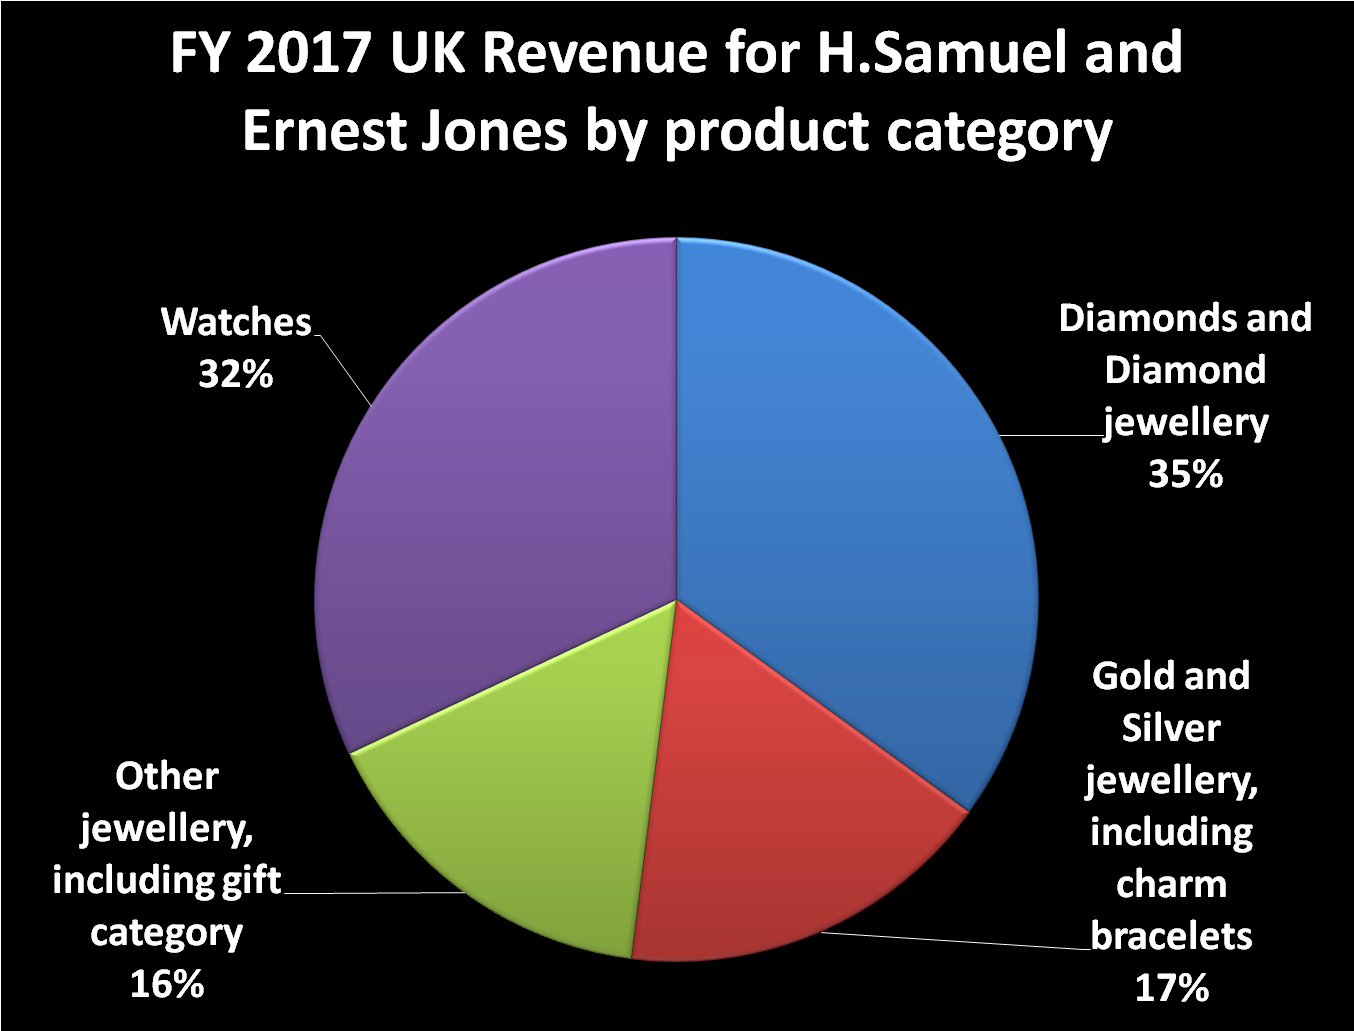 Watches accounted for 33% of sales for Signet's UK retailers FY17, which ended in January this year.